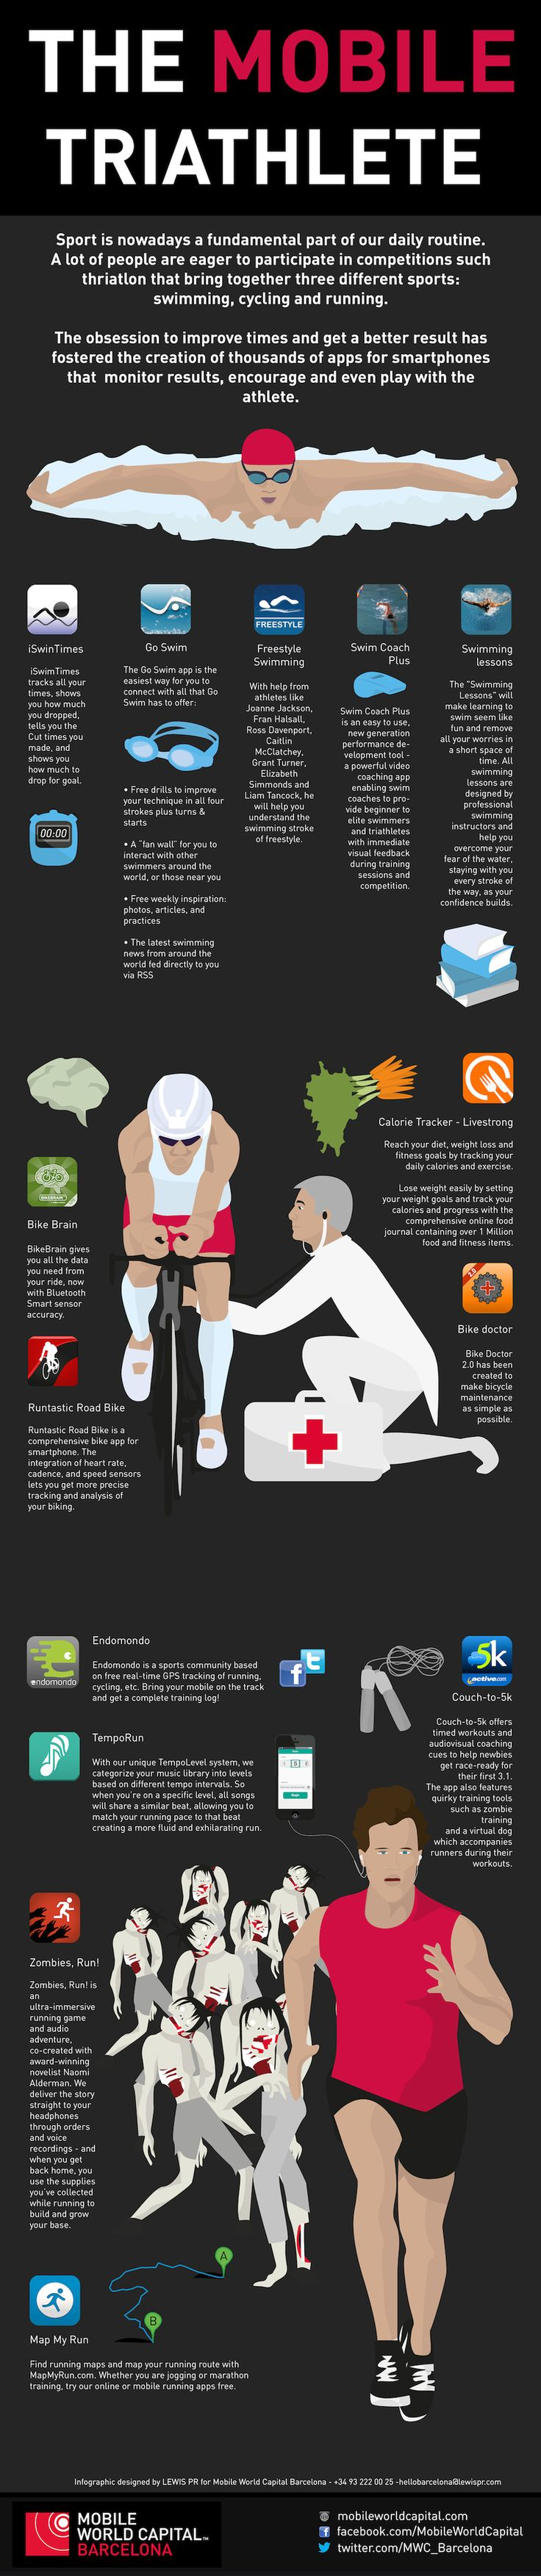 The Mobile Triathlete | Mobile World Capital #mobilemarketing #apps #trichat